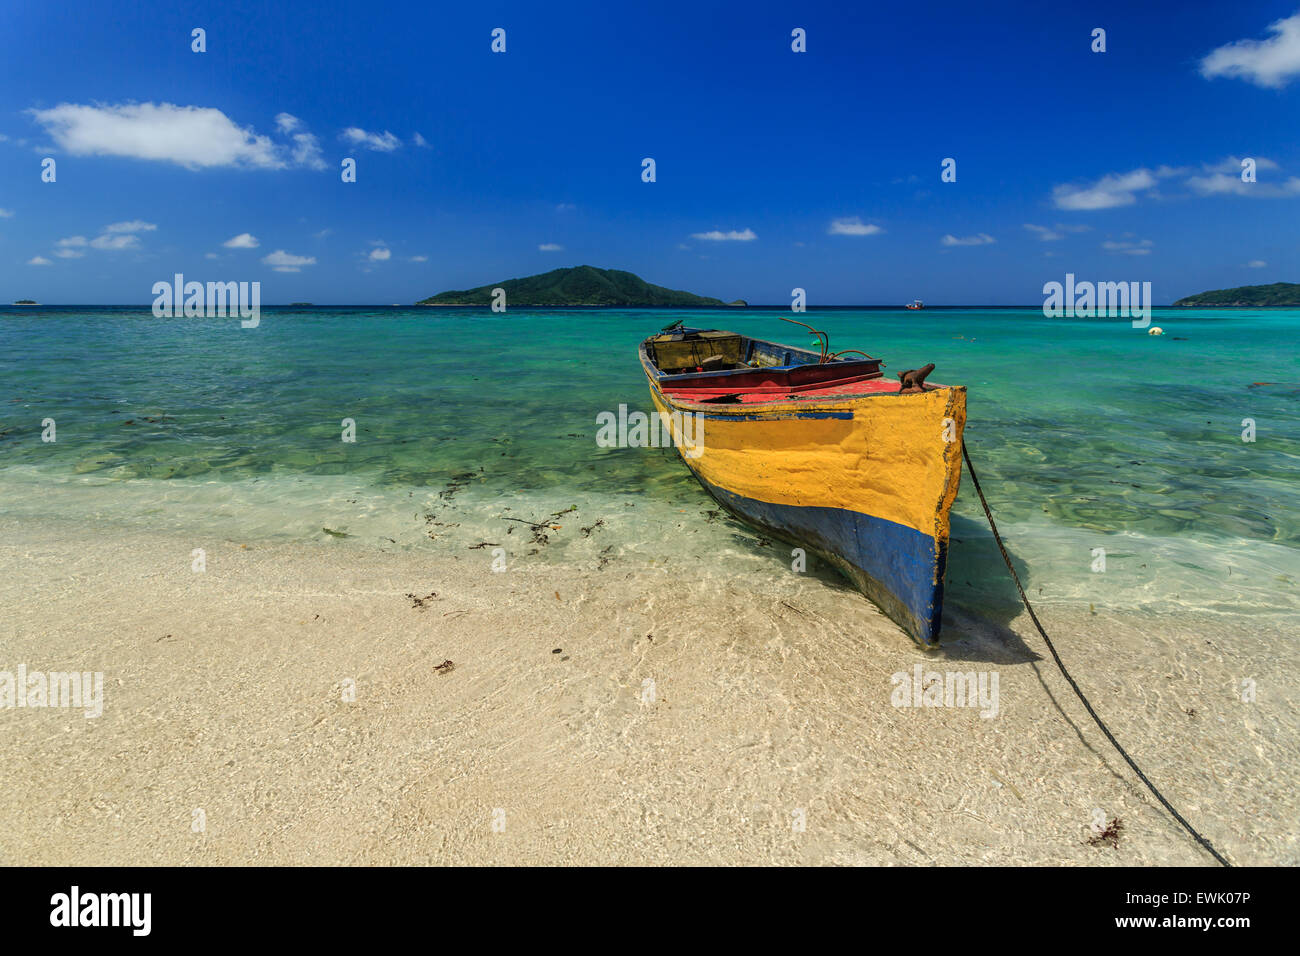 Colorful Yellow And Blue Wood Fishing Boat On Tropical Island Beach